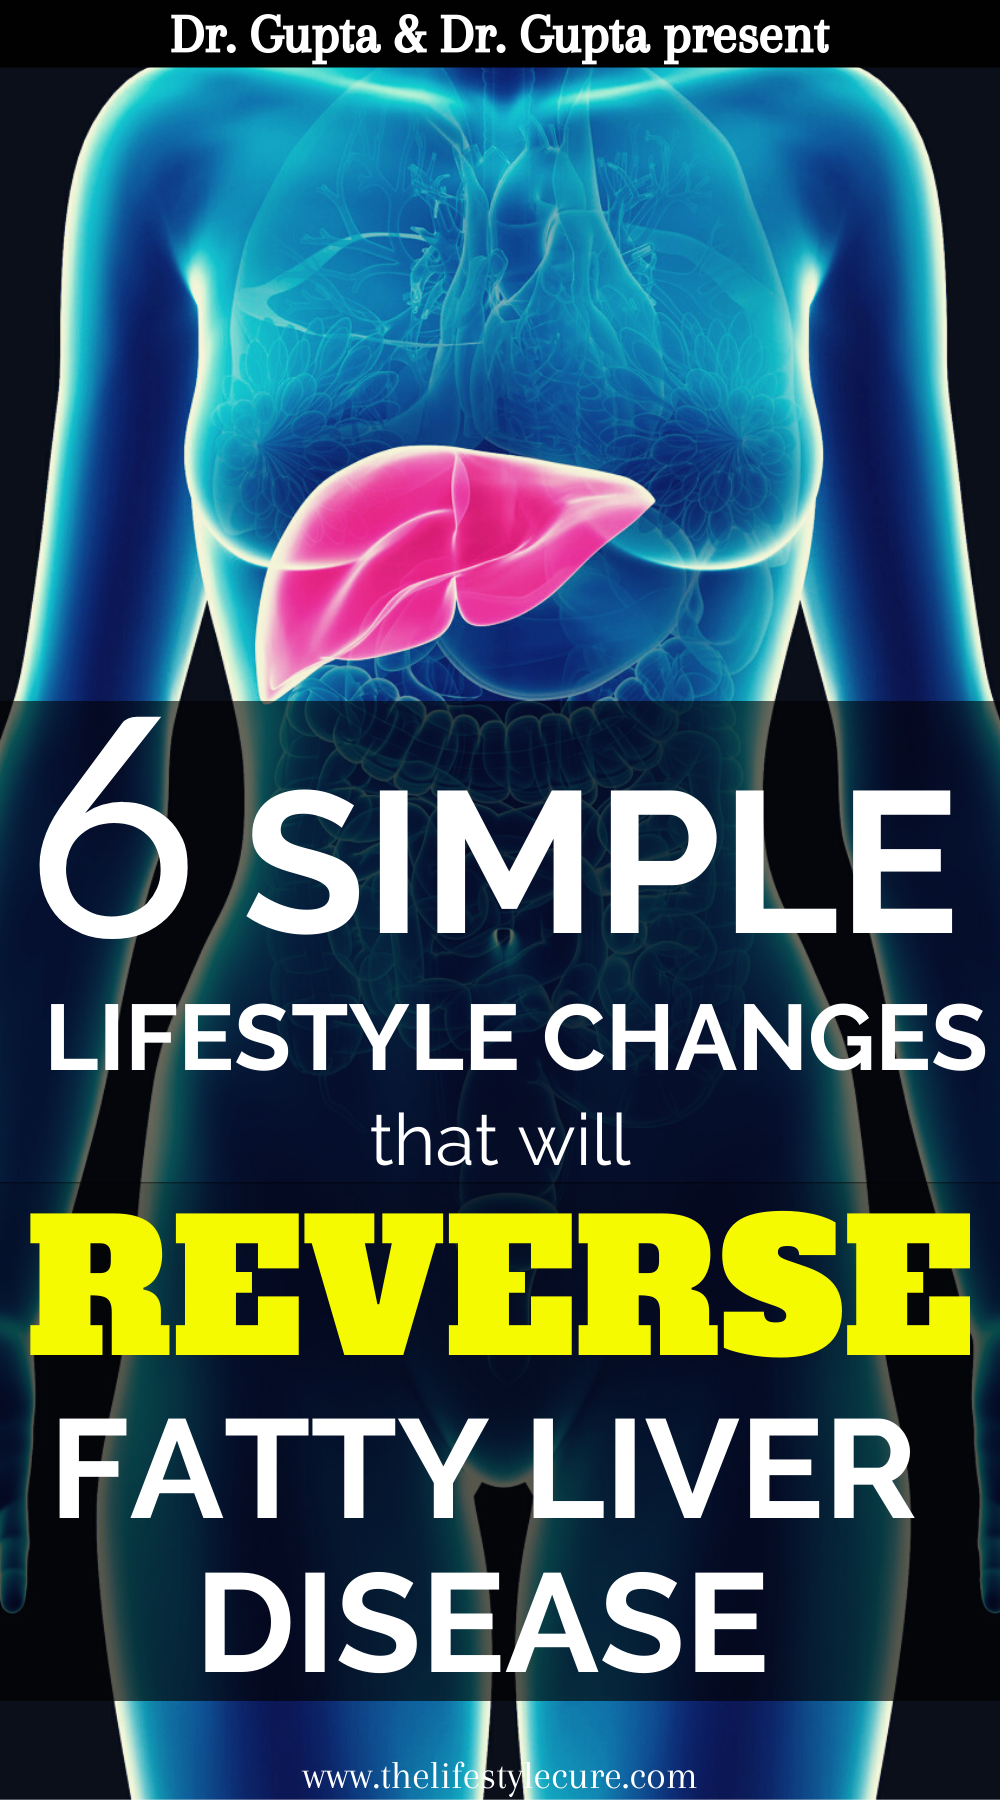 6 Simple Lifestyle Changes That Can Reverse Fatty